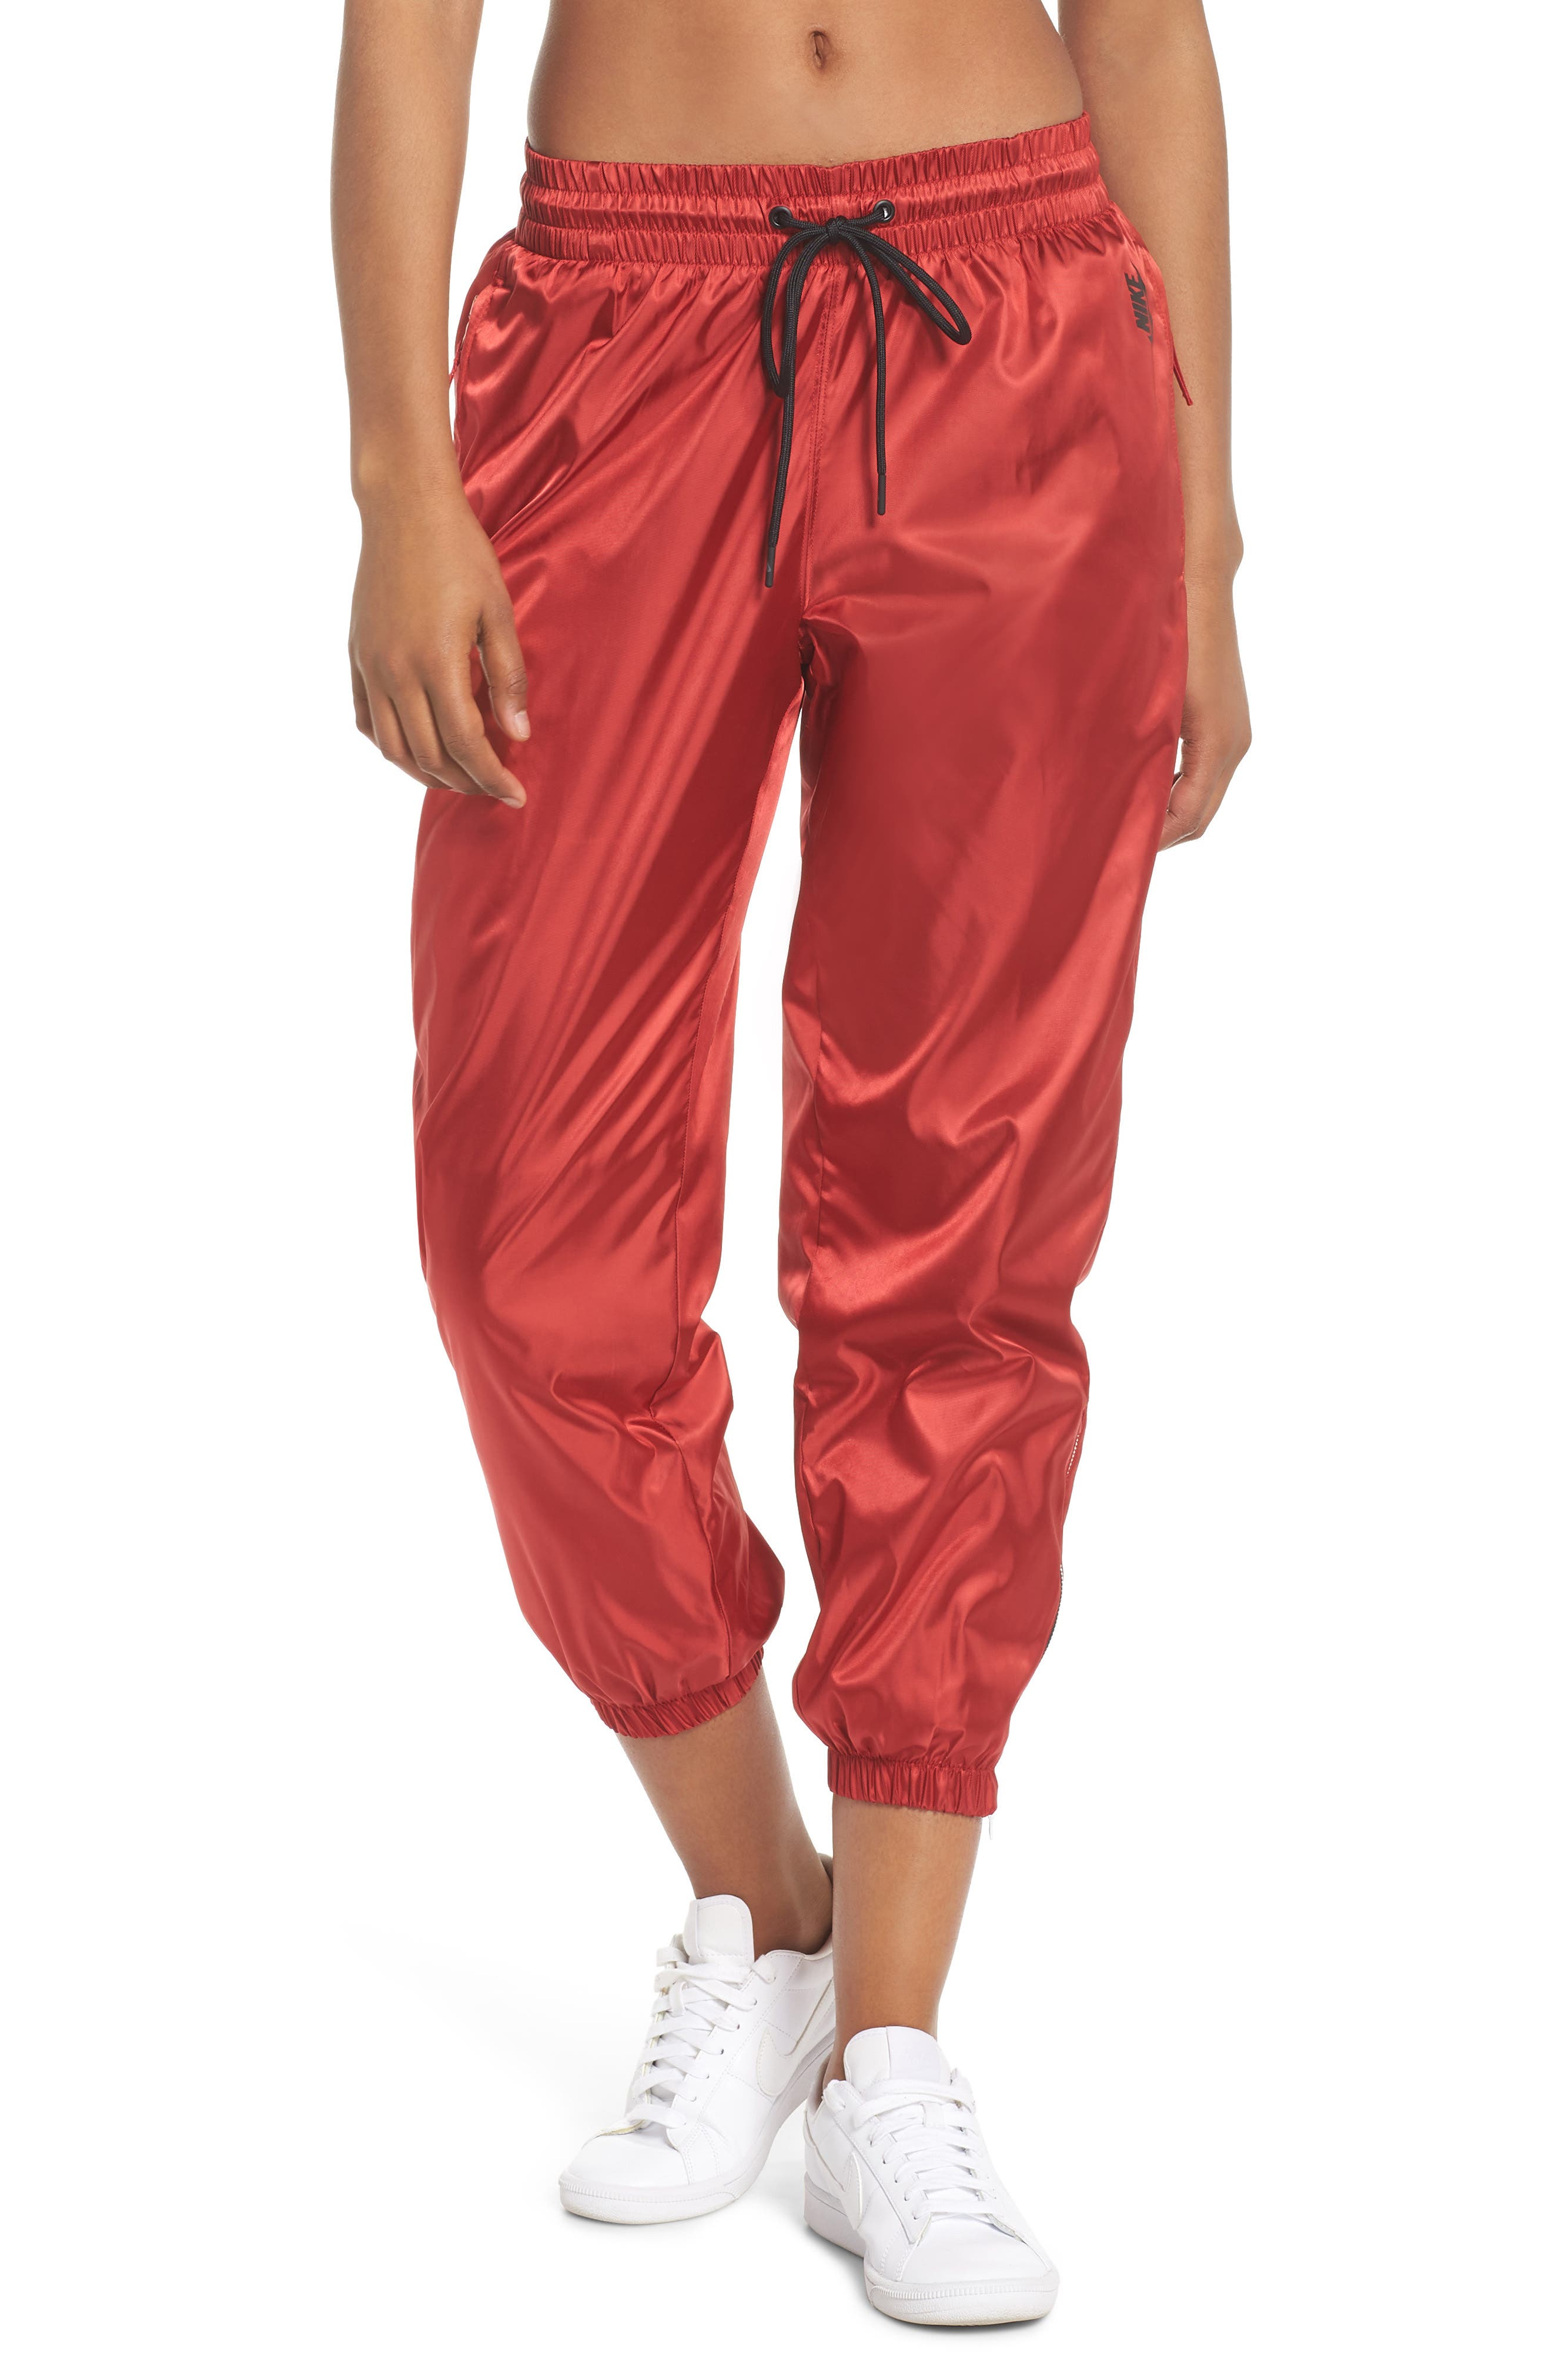 NikeLab Collection Women's Satin Track Pants,                             Main thumbnail 1, color,                             Gym Red/ Black